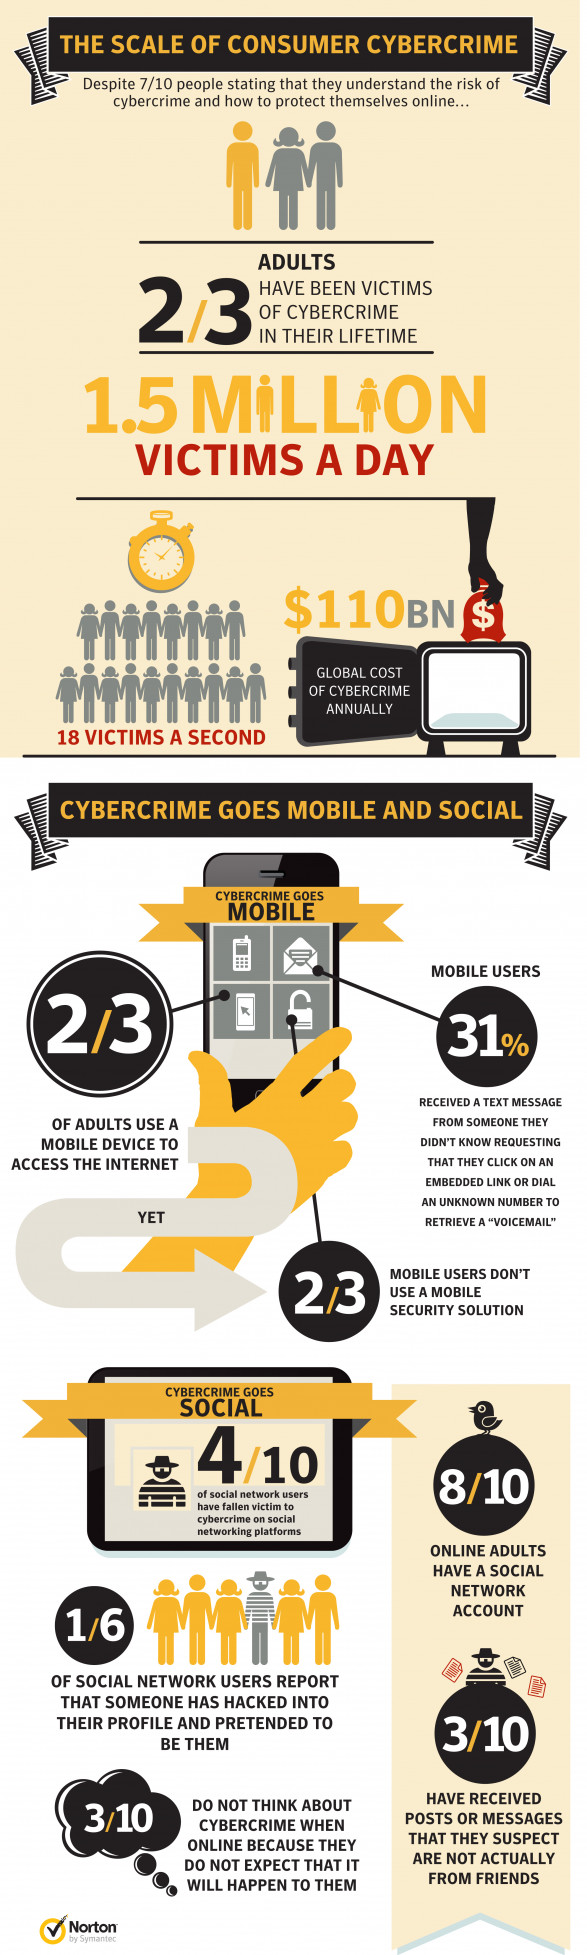 The Scale of Consumer Cybercrime